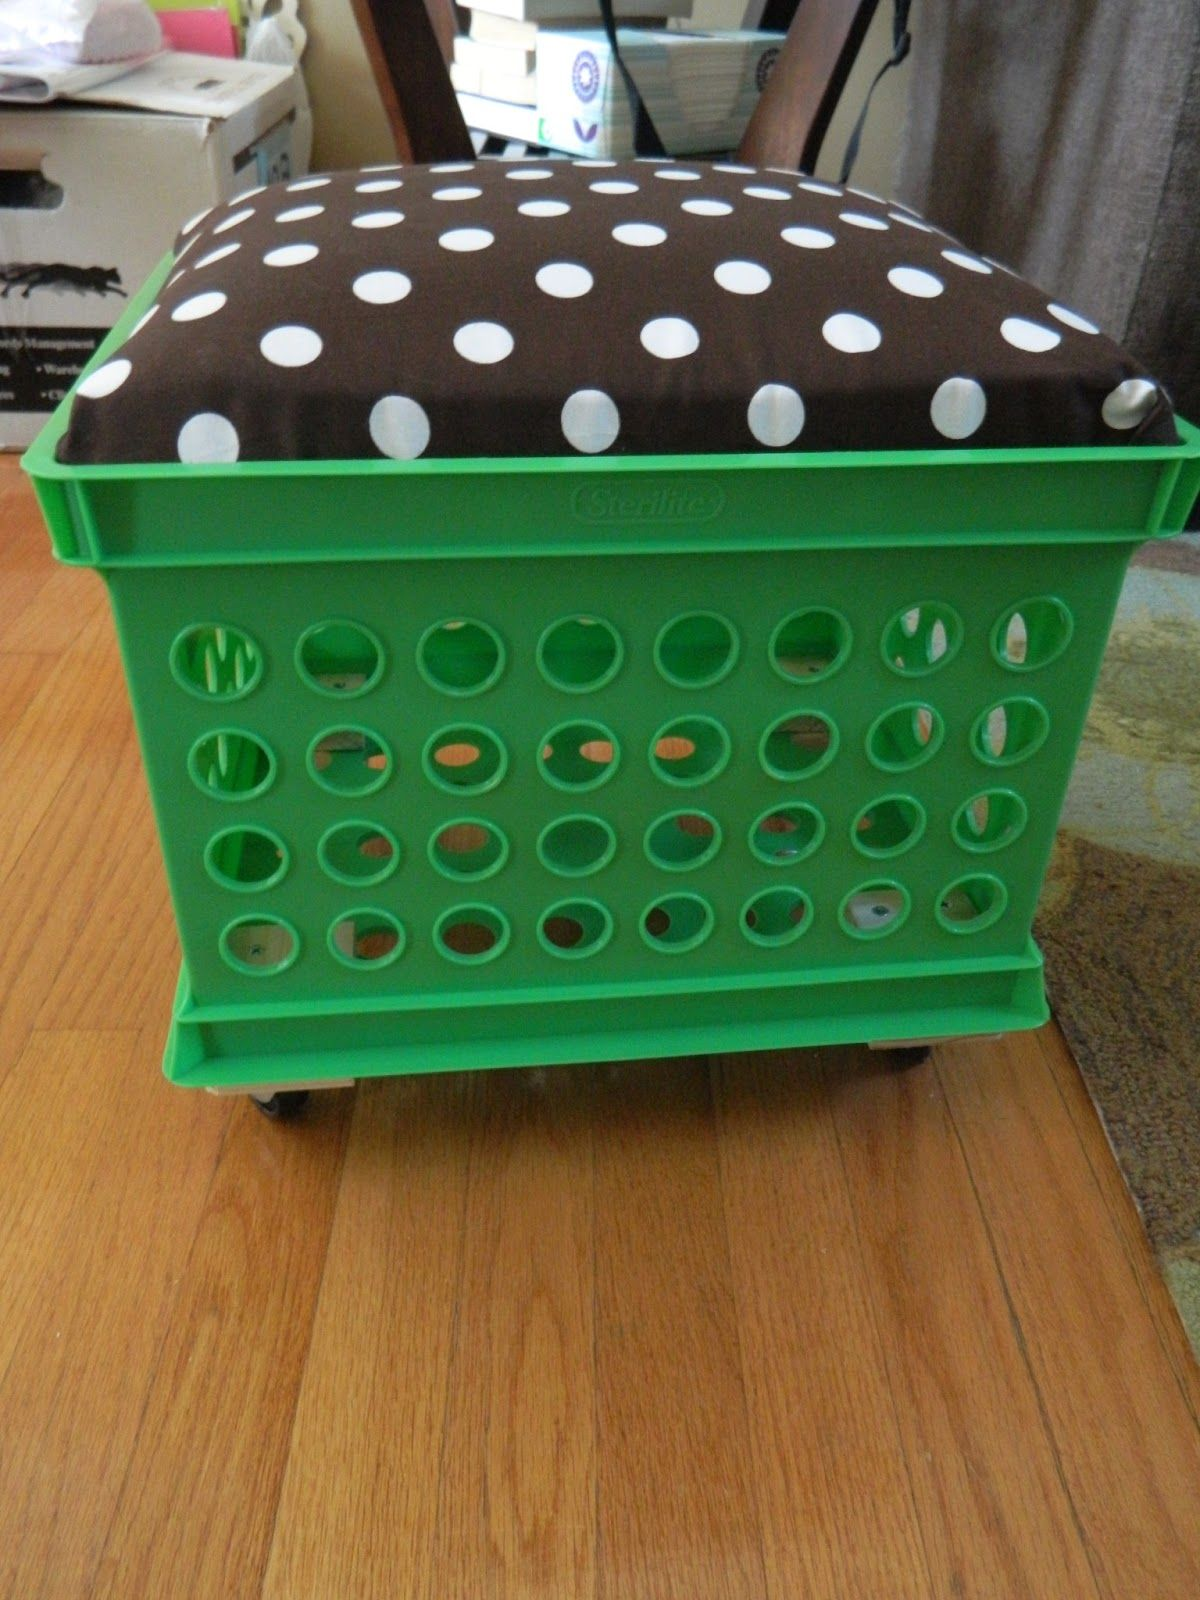 How To Add Wheels To Bottom Of Milk Crates Google Search Crate Seats Crate Seats Classroom Crates